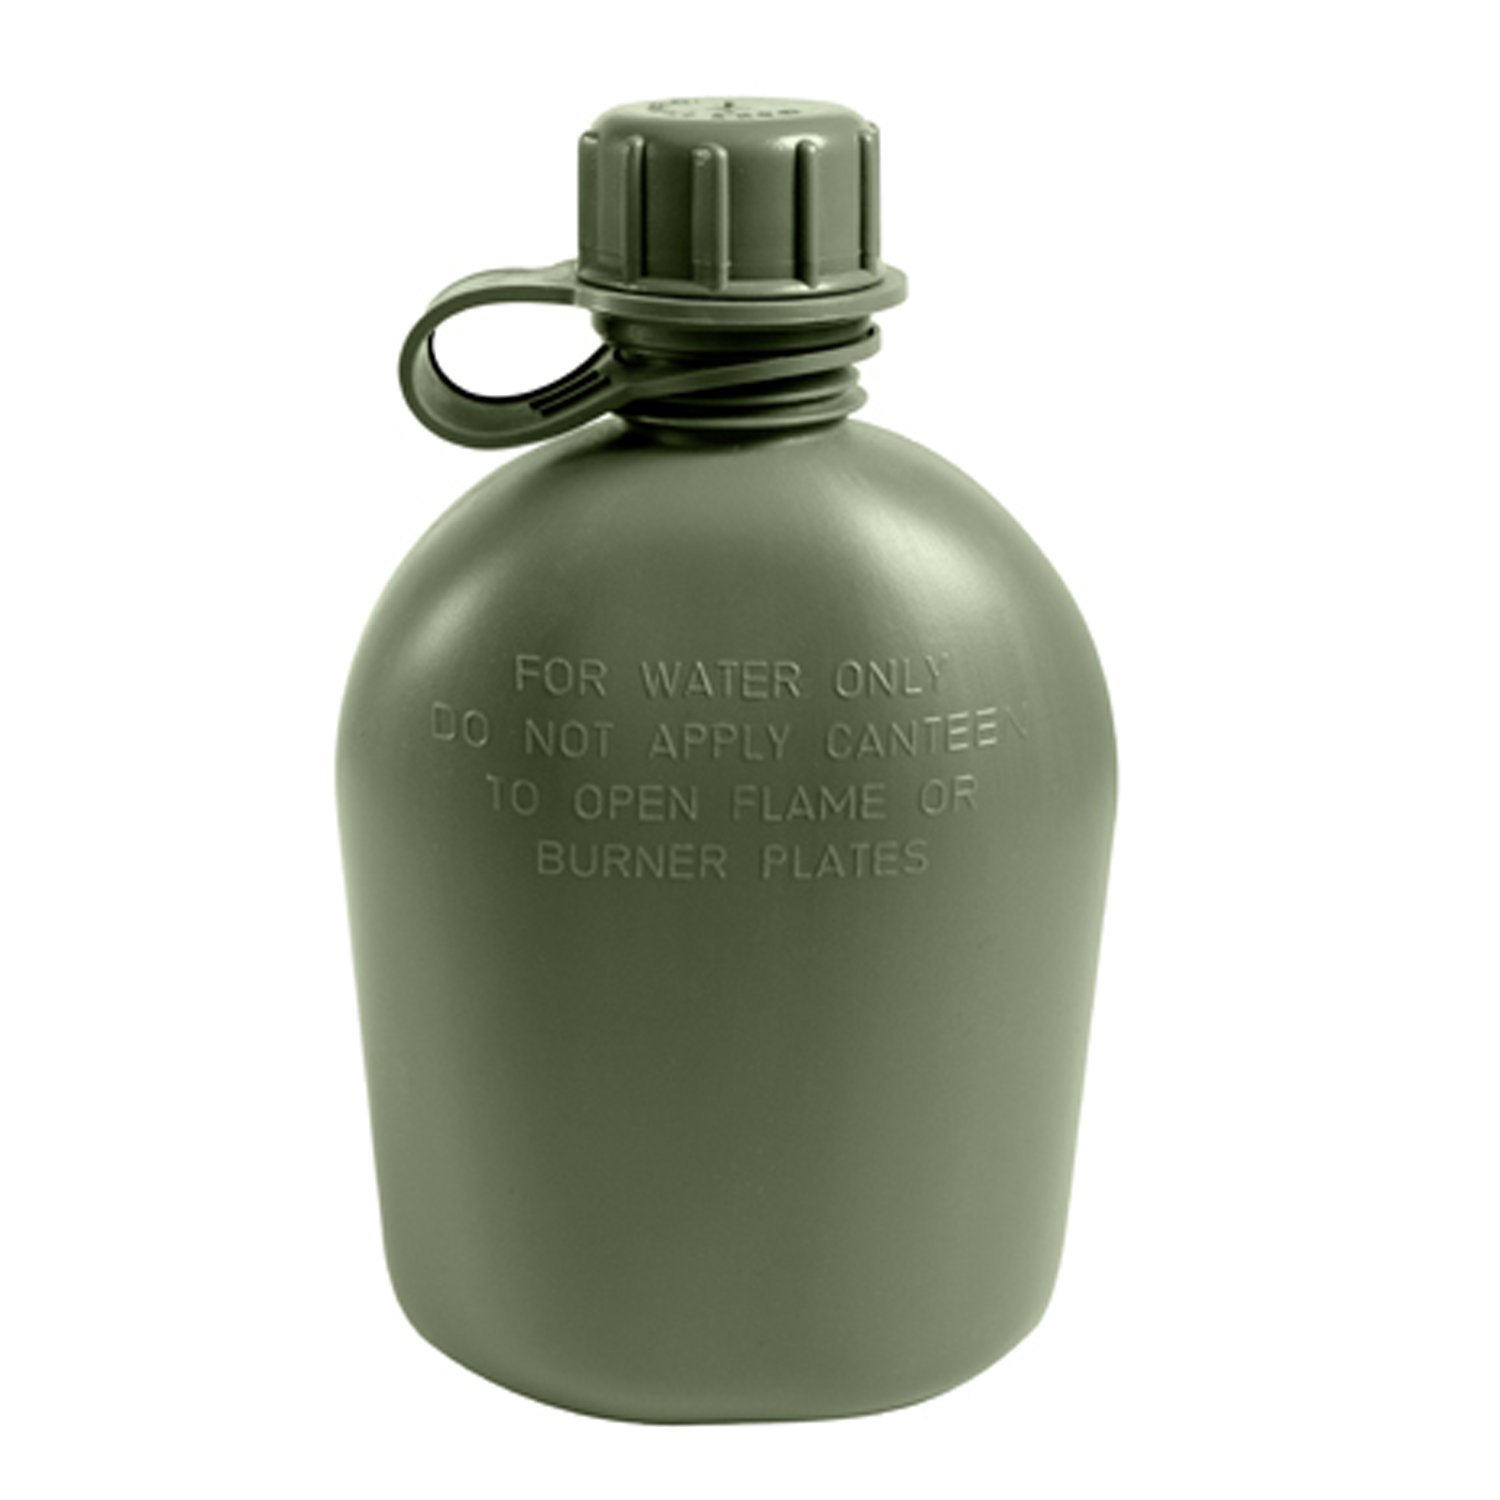 e20aff7f781 Get Quotations · Military Outdoor Clothing Never Issued U.S. Military  Canteen